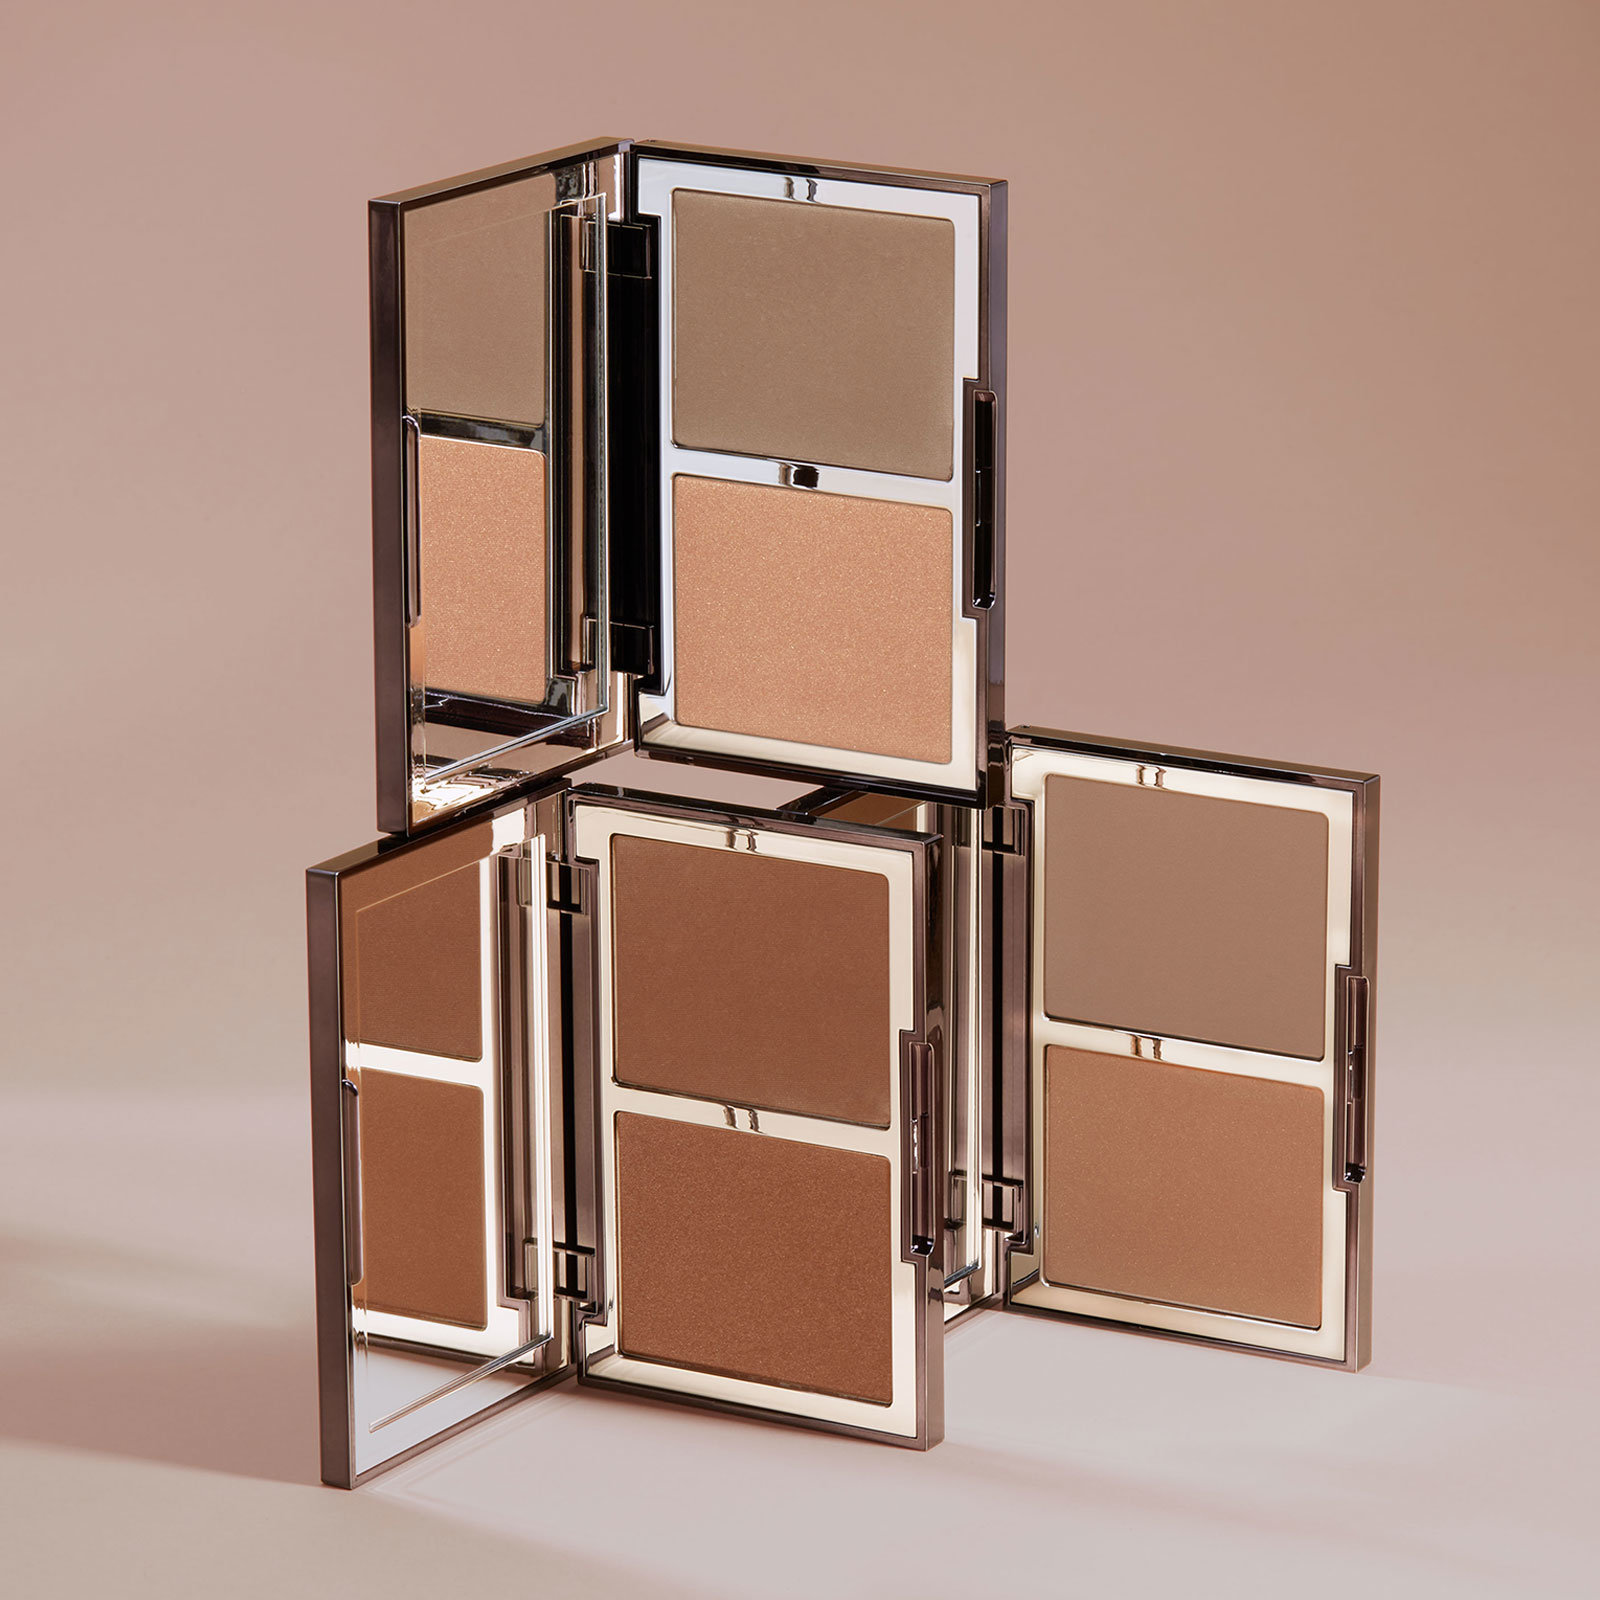 Alternate product image for The Radiance Boosting Face Palette shown with the description.